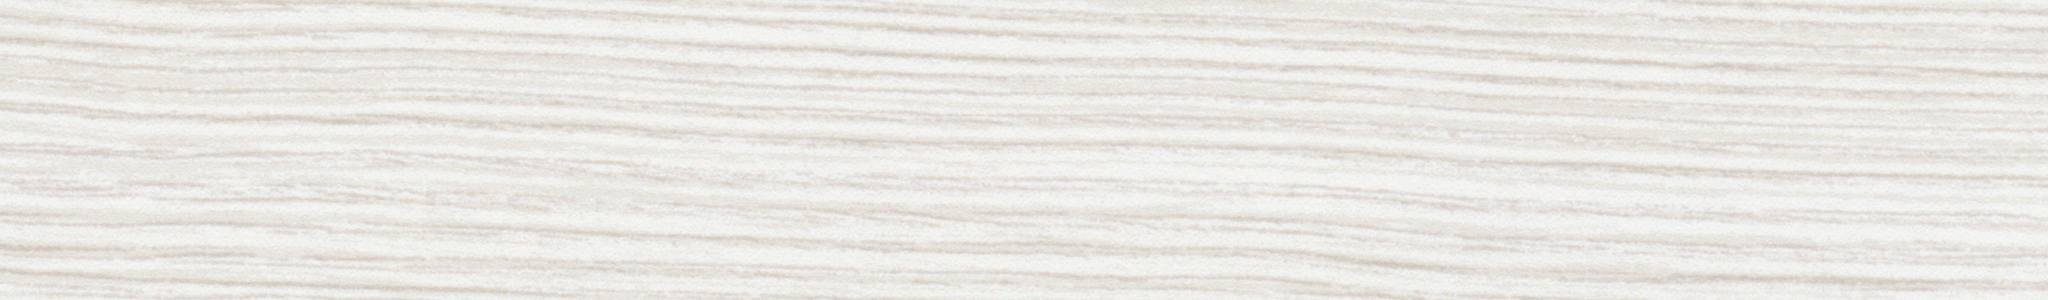 HD 653433 Melamine Edge FALZ Polar Pine Smooth